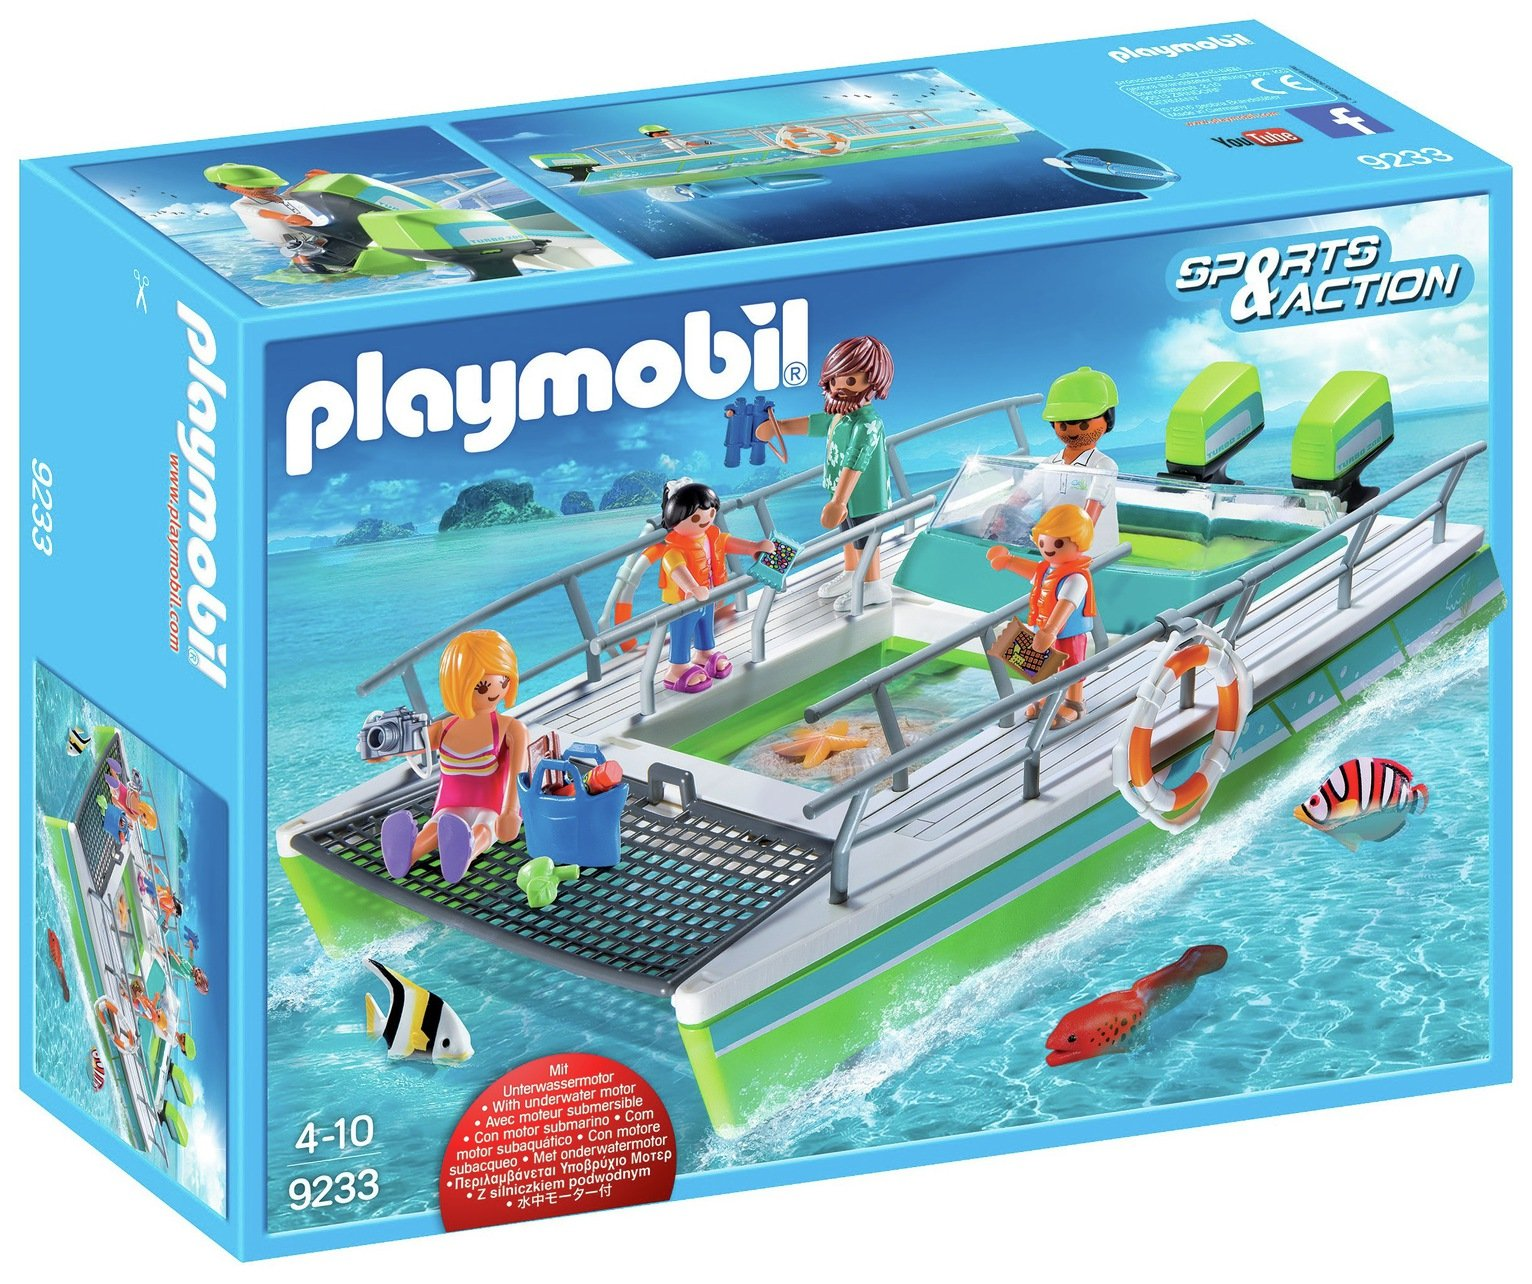 Playmobil 9233 Sports & Action Glass Bottom Boat